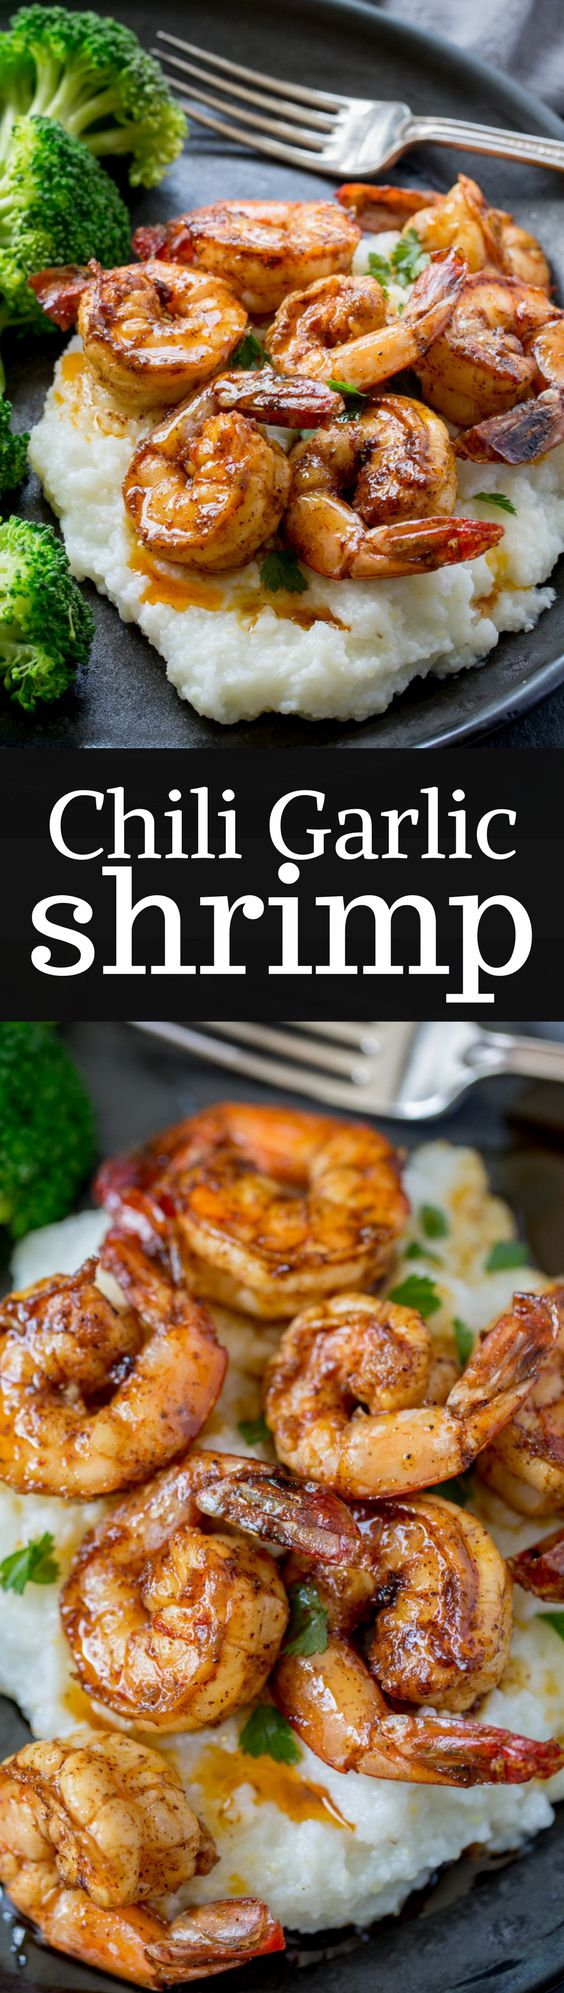 """Chili Garlic Shrimp - from """"The Weeknight Dinner Cookbook"""" - a delicious, flavorful shrimp that is on the table in minutes! www.savingdessert.com"""